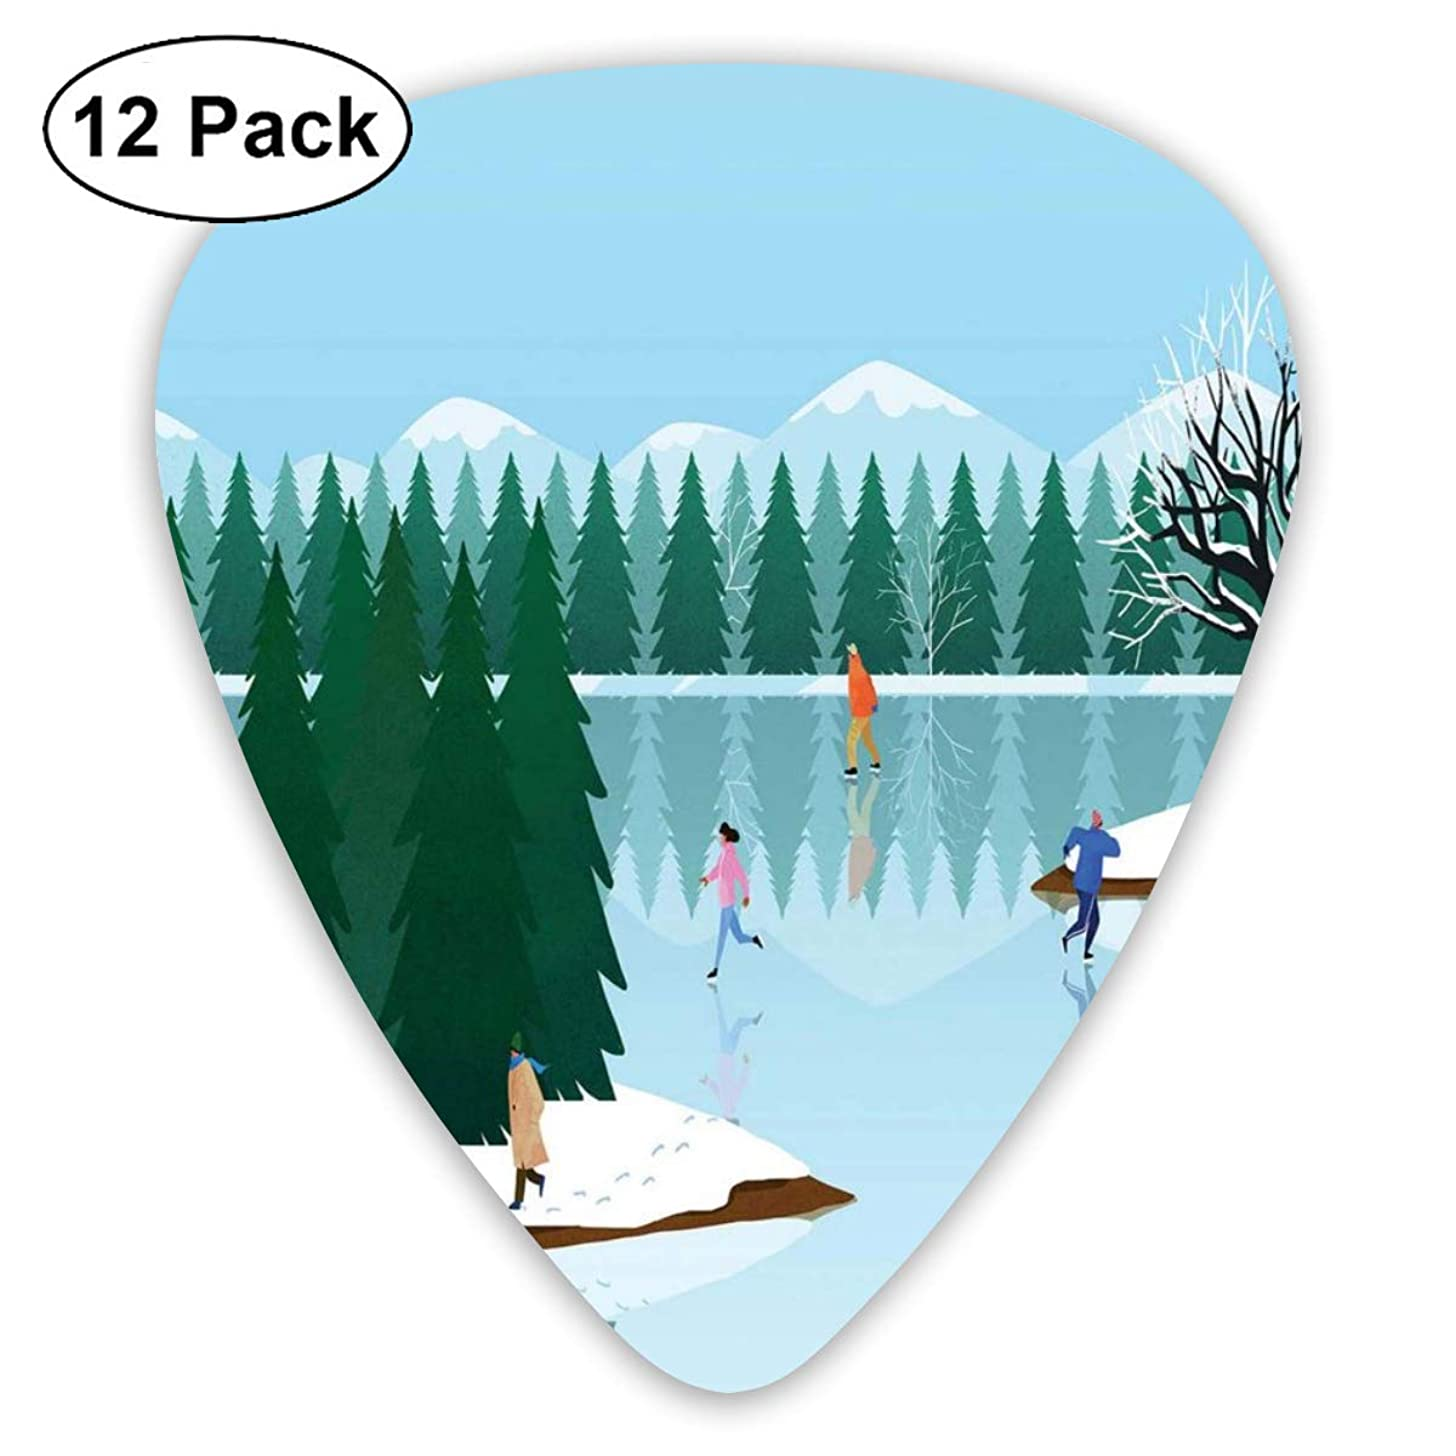 Celluloid Guitar Picks - 12 Pack,Abstract Art Colorful Designs,Frozen Lake Christmas Holiday Ice Skating Illustration Urban Activity Composition,For Bass Electric & Acoustic Guitars.